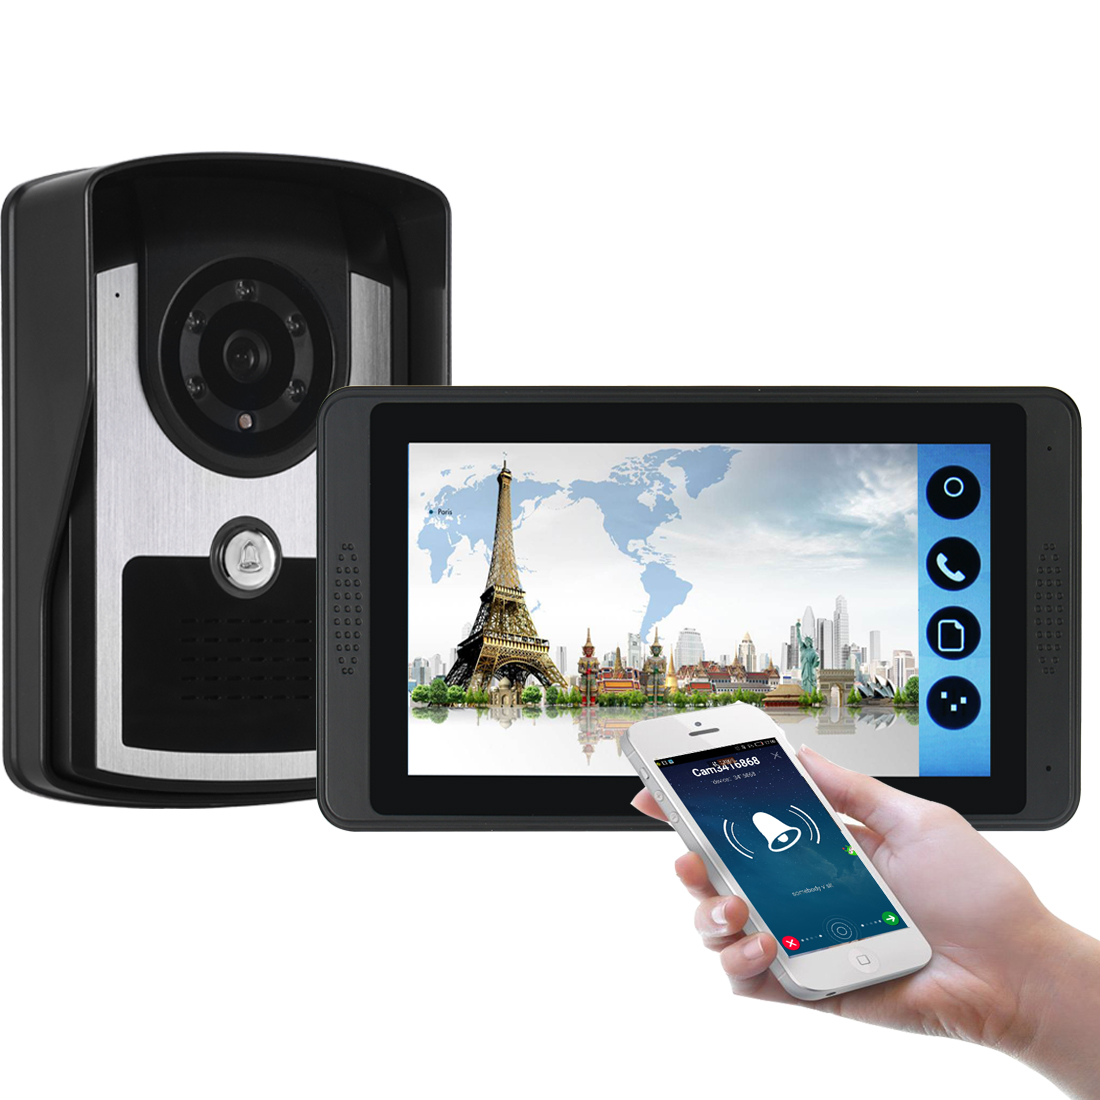 7'' WiFi Video Doorbell Capacitive Touch Screen Wired Photo Phone Remote Control Night Home Intercom Security Camera Apartment